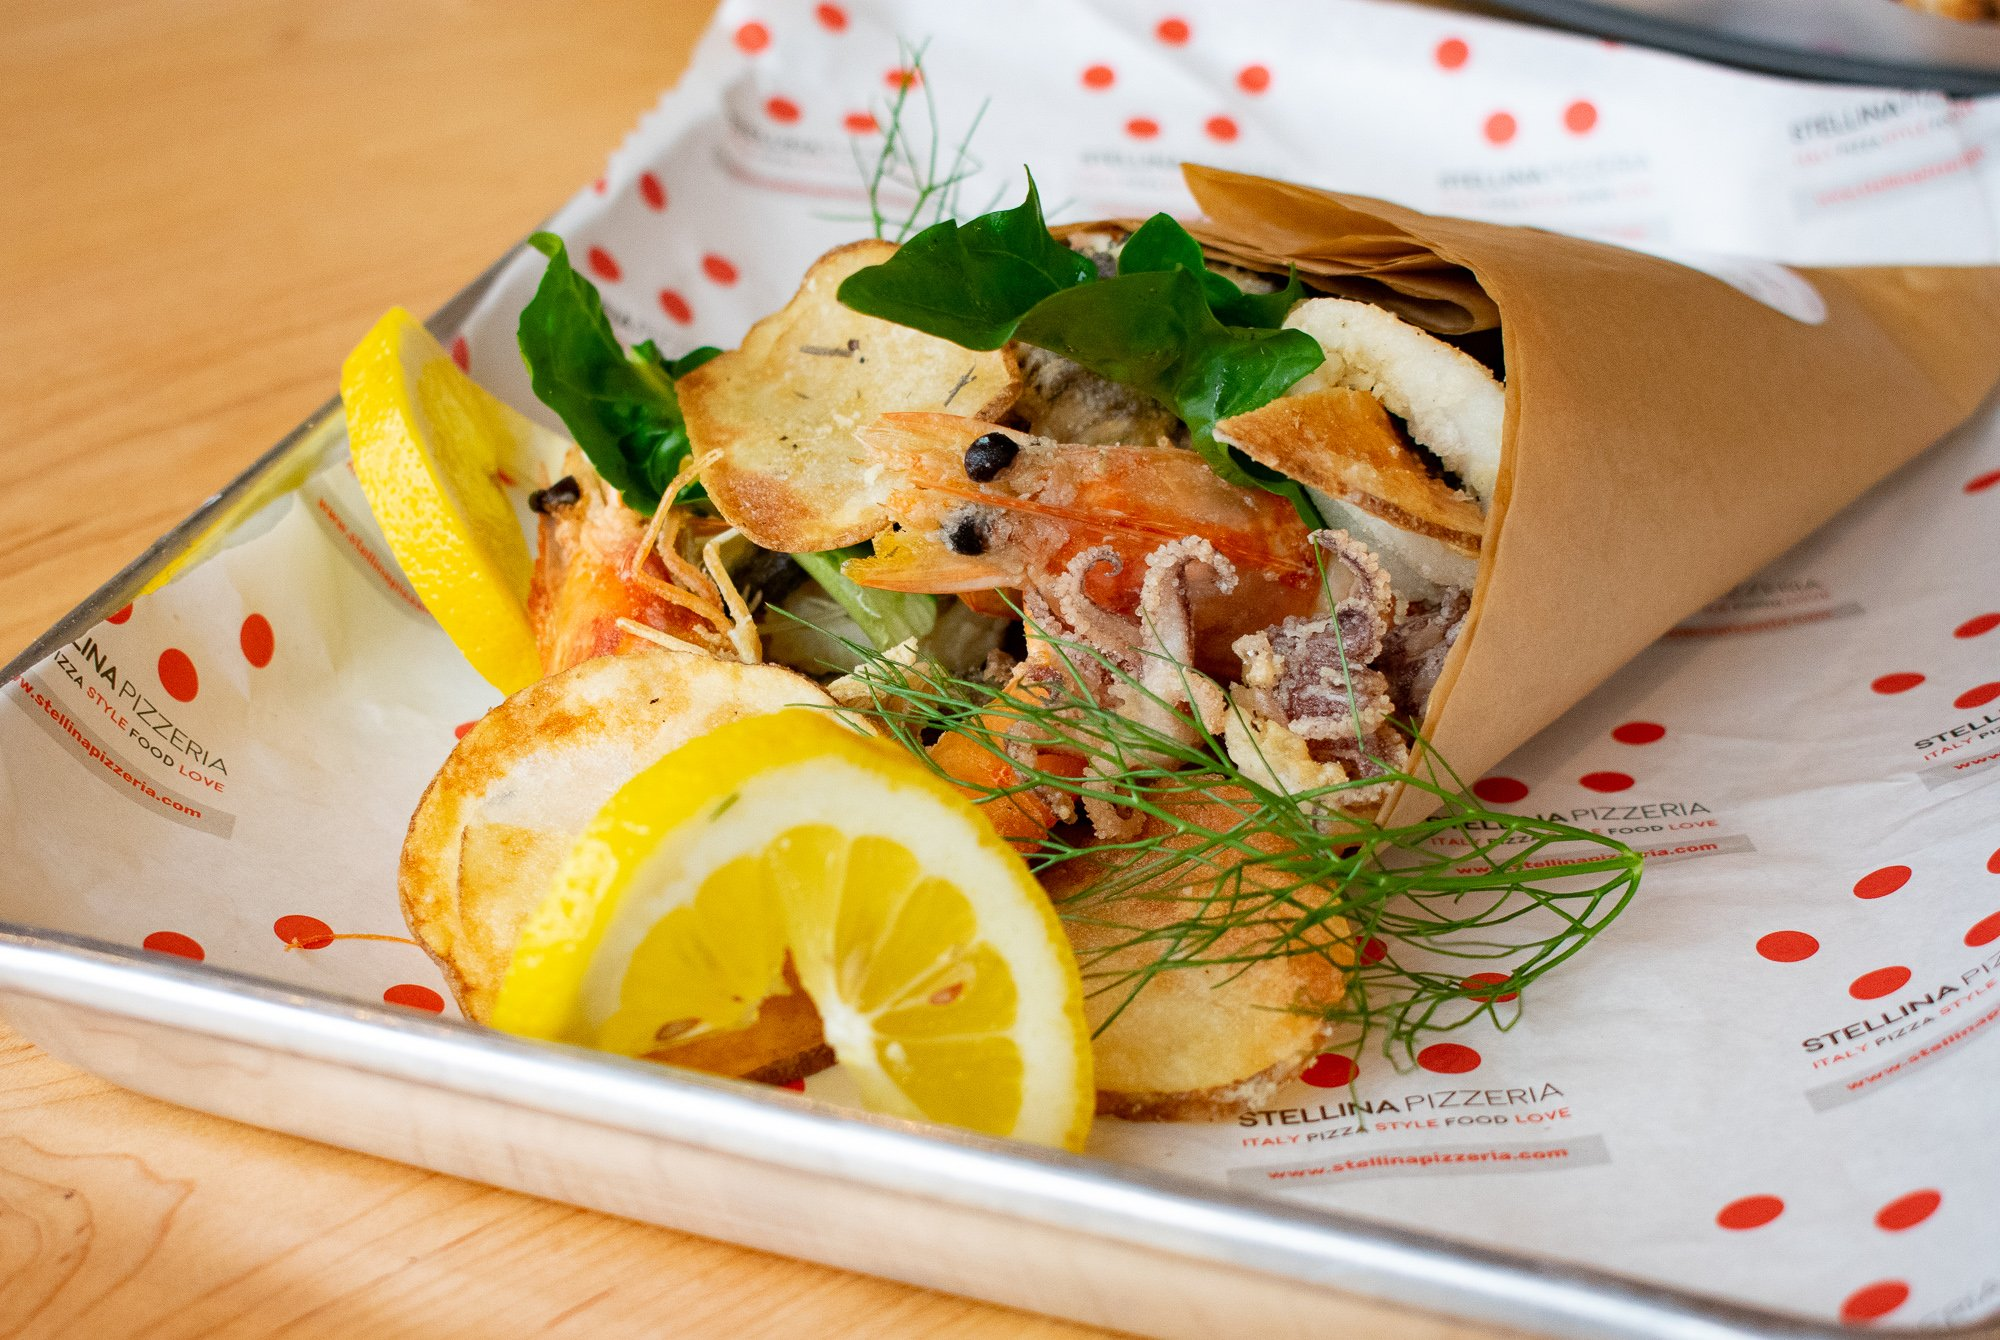 Seafood fritto misto is served in a paper cone, inspired by Venini's trip to Puglia. Photograph by Meaghan Webster.